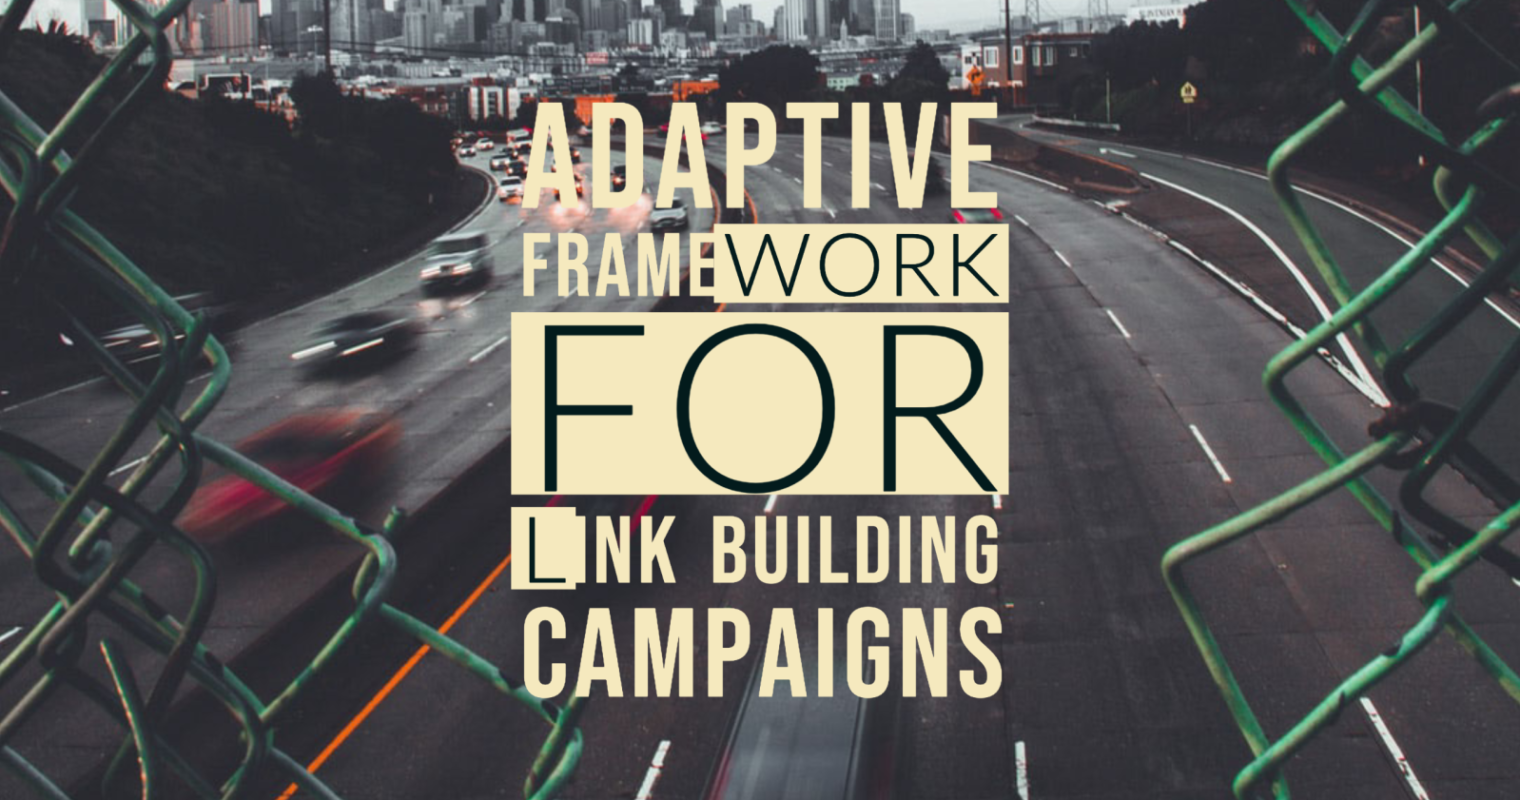 An Adaptive Framework for Link Building Campaigns